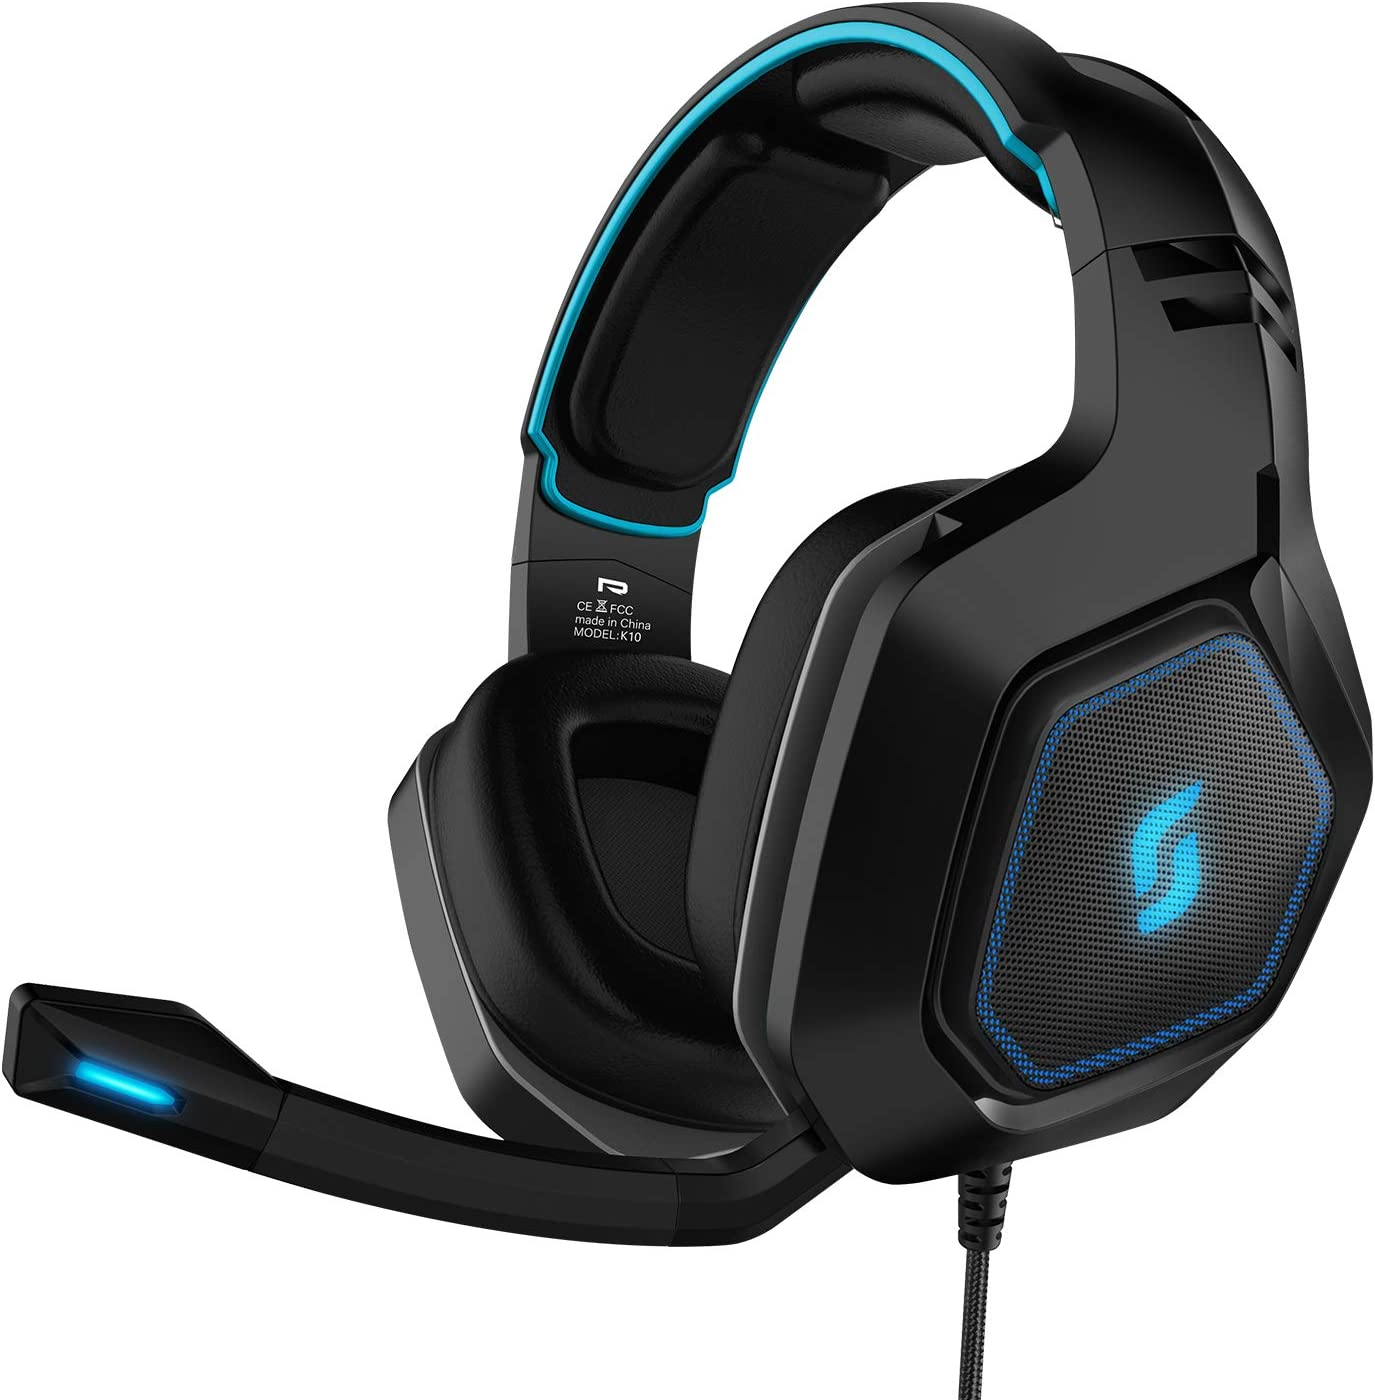 Sliq Gaming Scorpio Gaming Stereo Headset/Headset with Microphone/Mic for PC, PS4, Xbox One, Nintendo Switch, Mobile, Tablet: Amazon.es: Electrónica